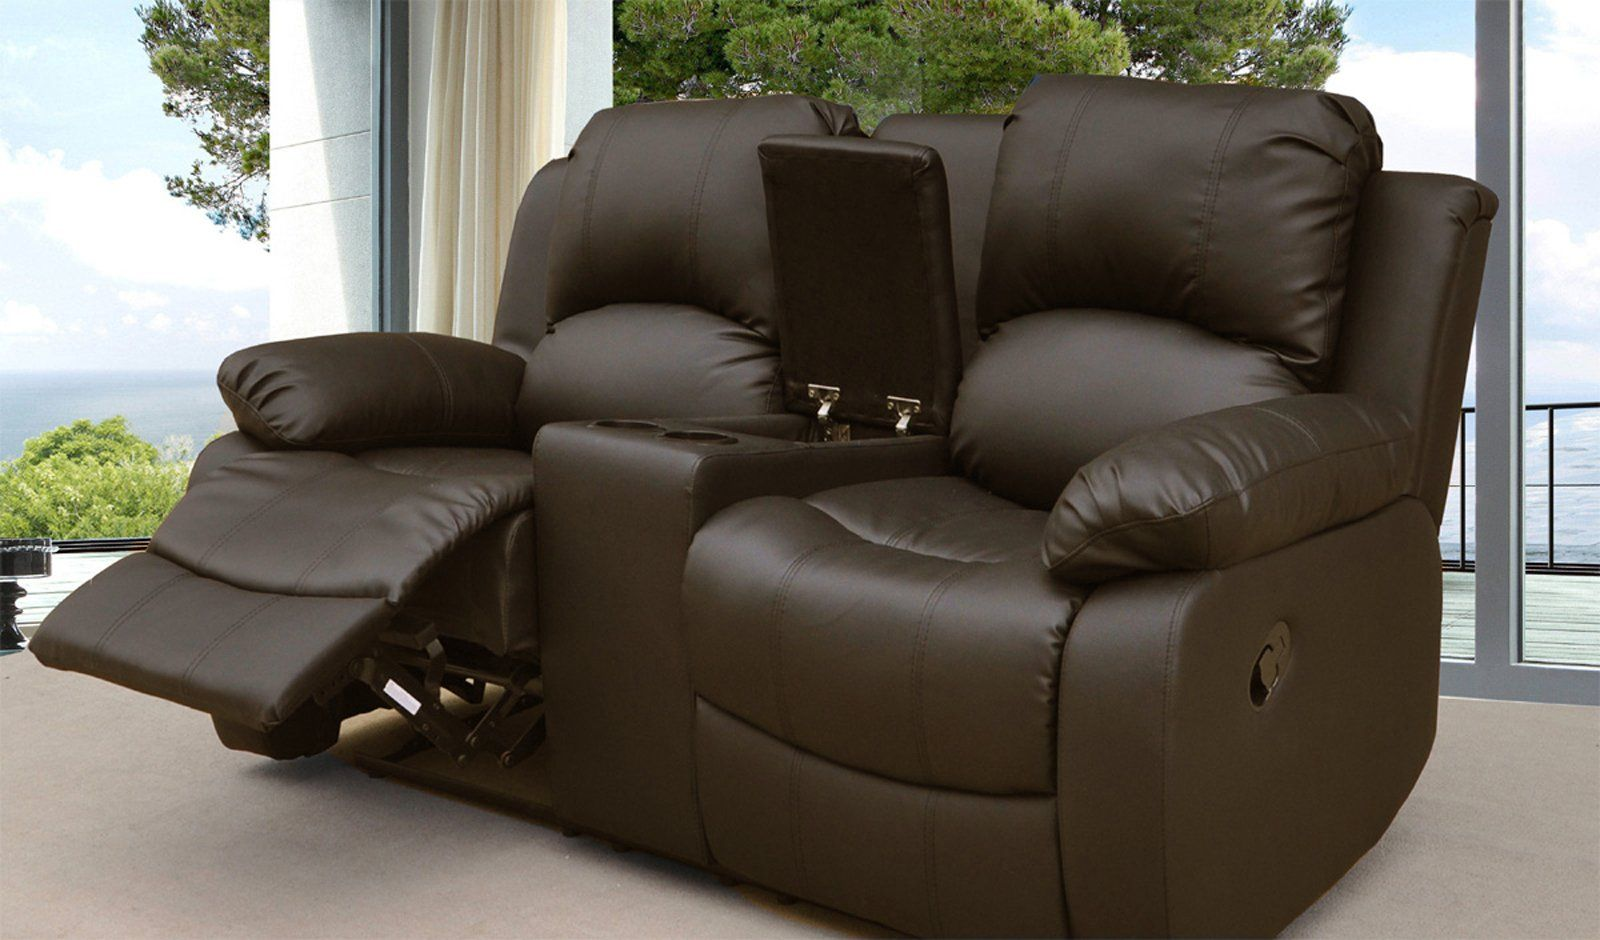 Lovesofas Valencia 2 seater leather recliner sofa with ...